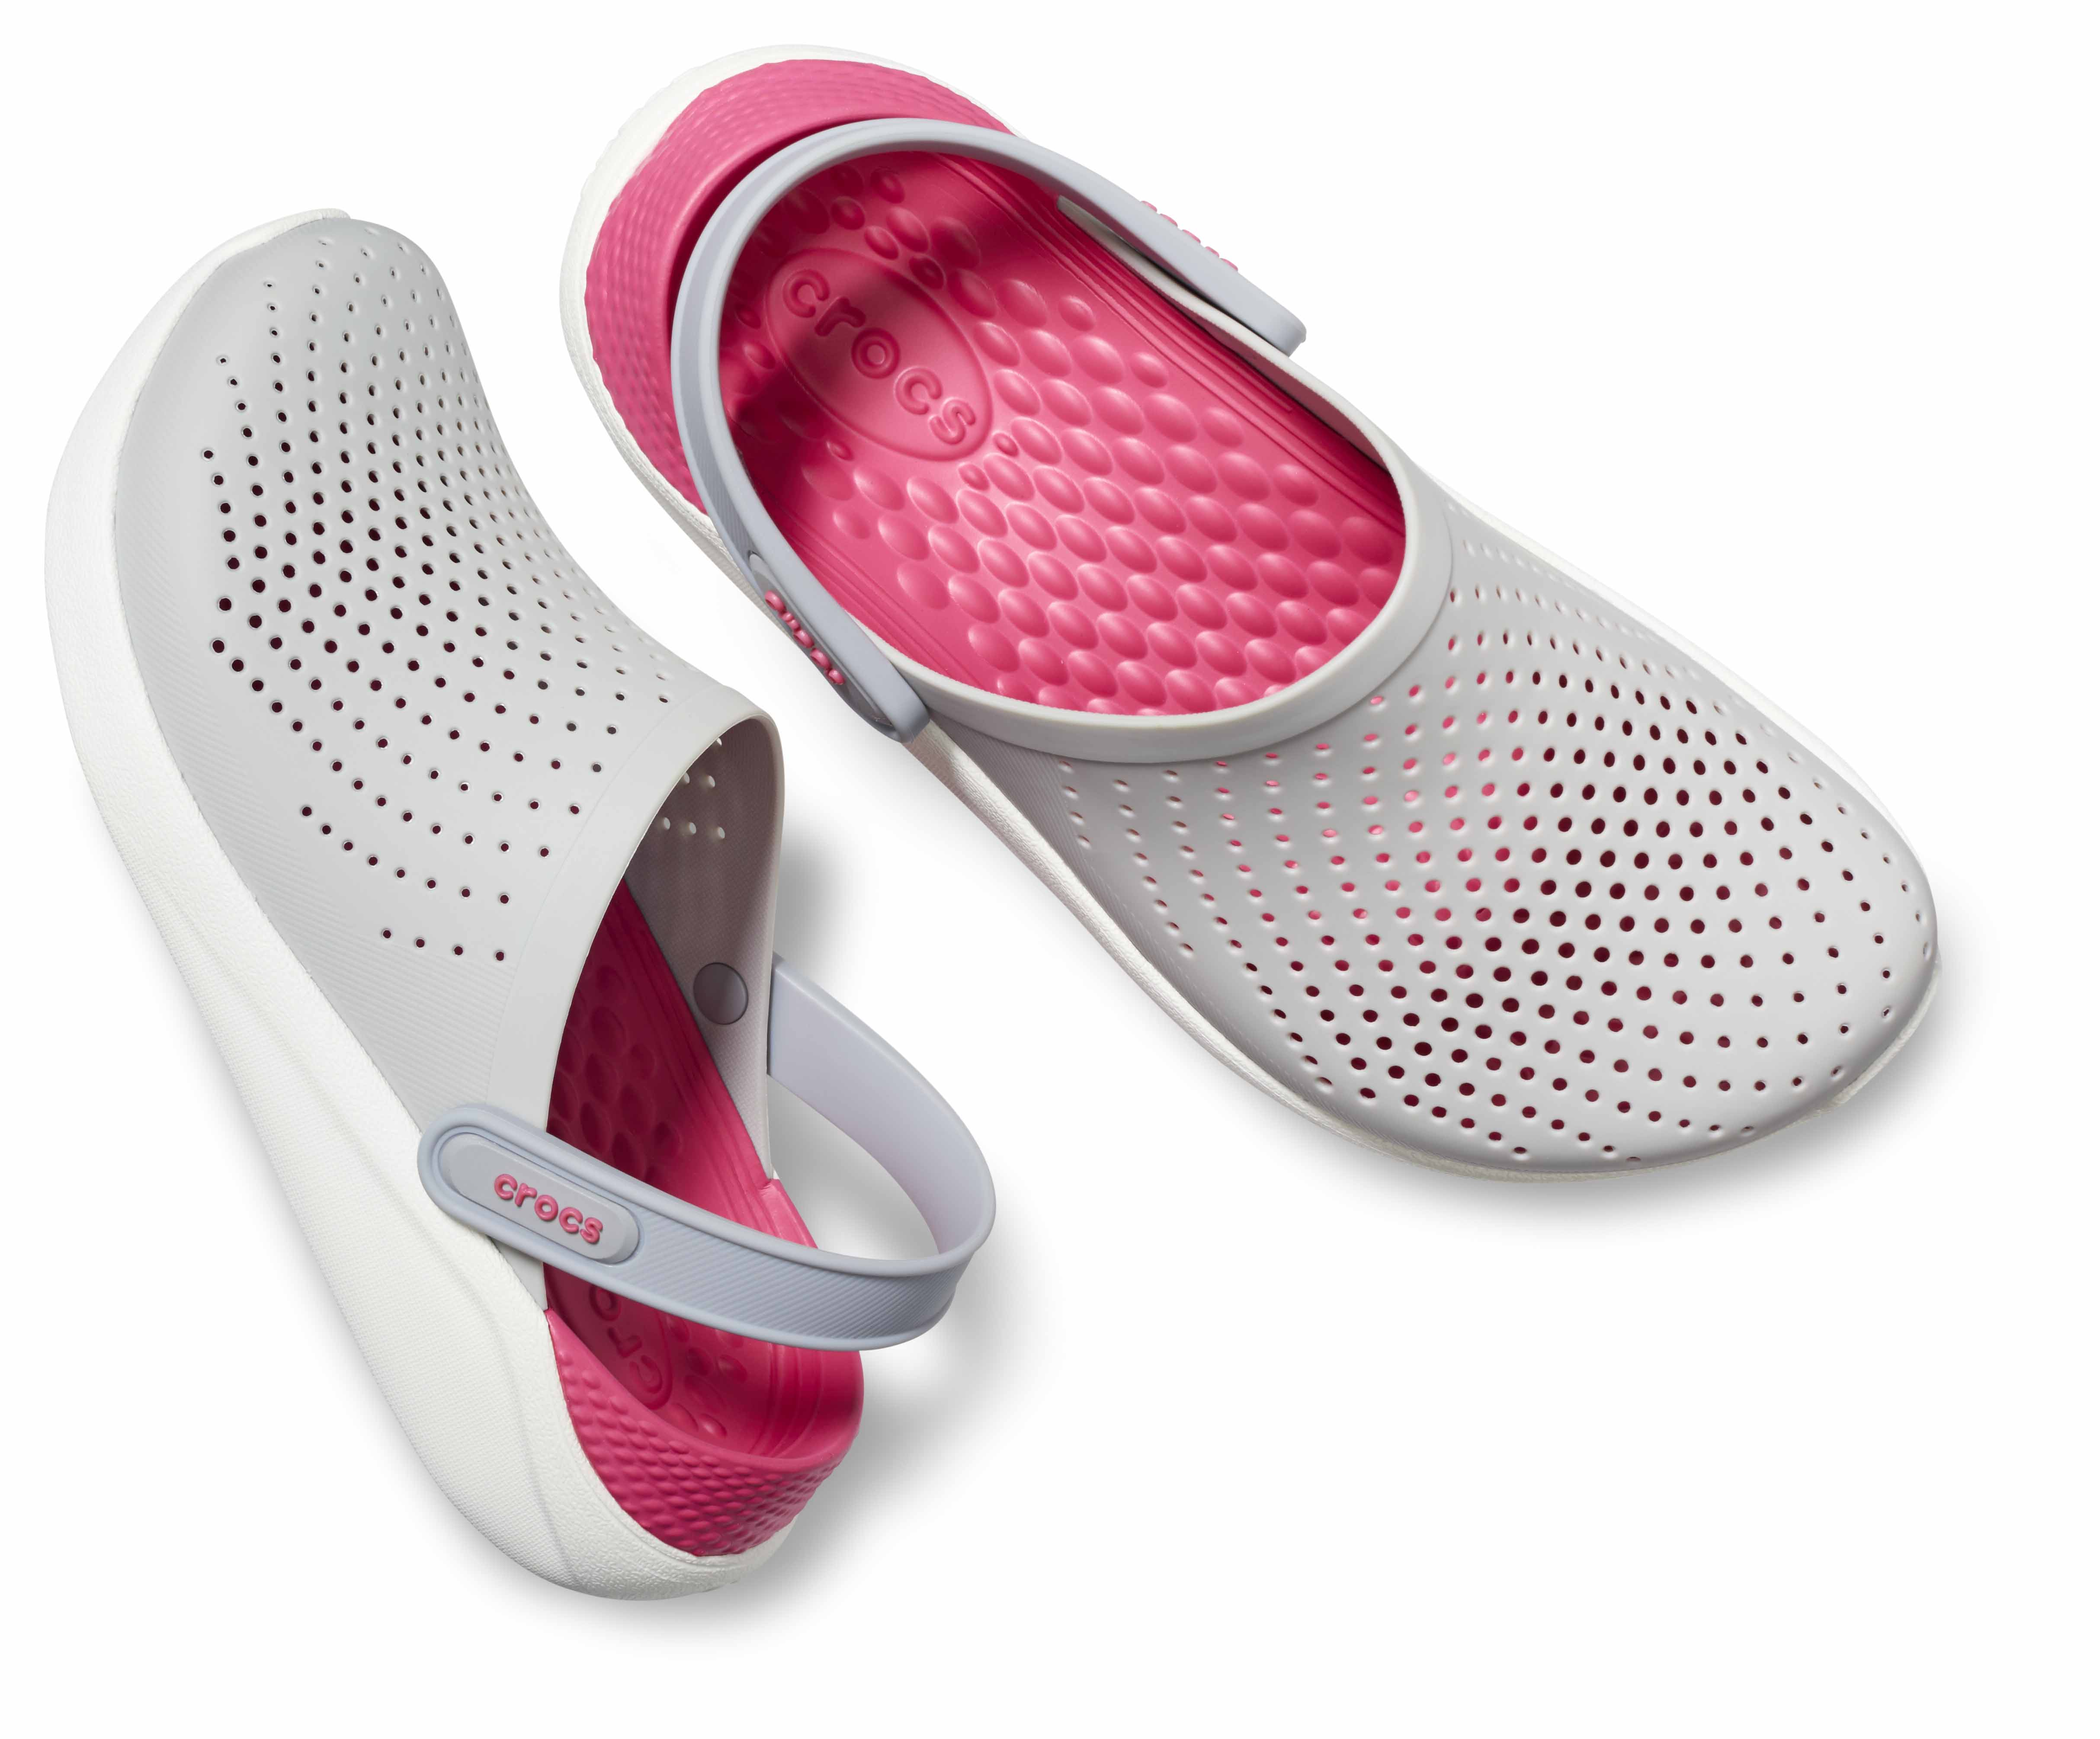 b51a2629e30a Crocs Launches LiteRide Collection - For Press Release - Online ...